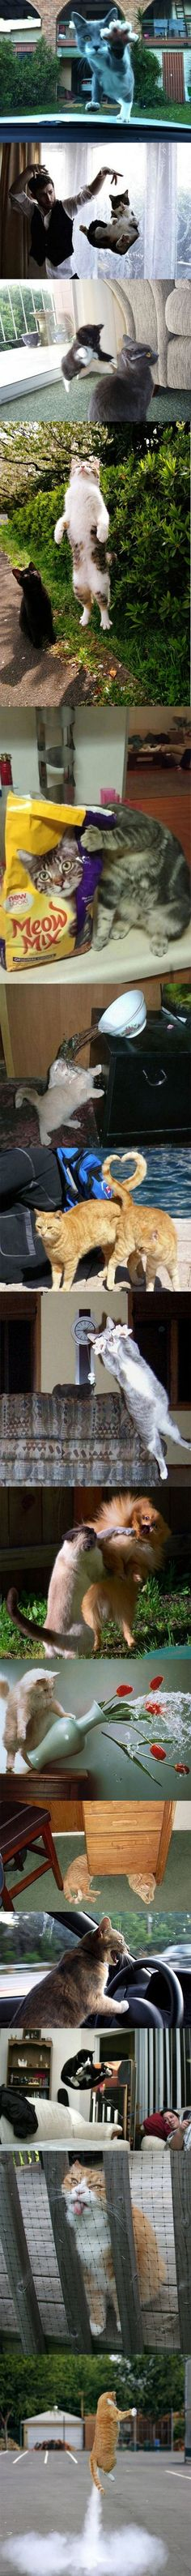 && more cats!!